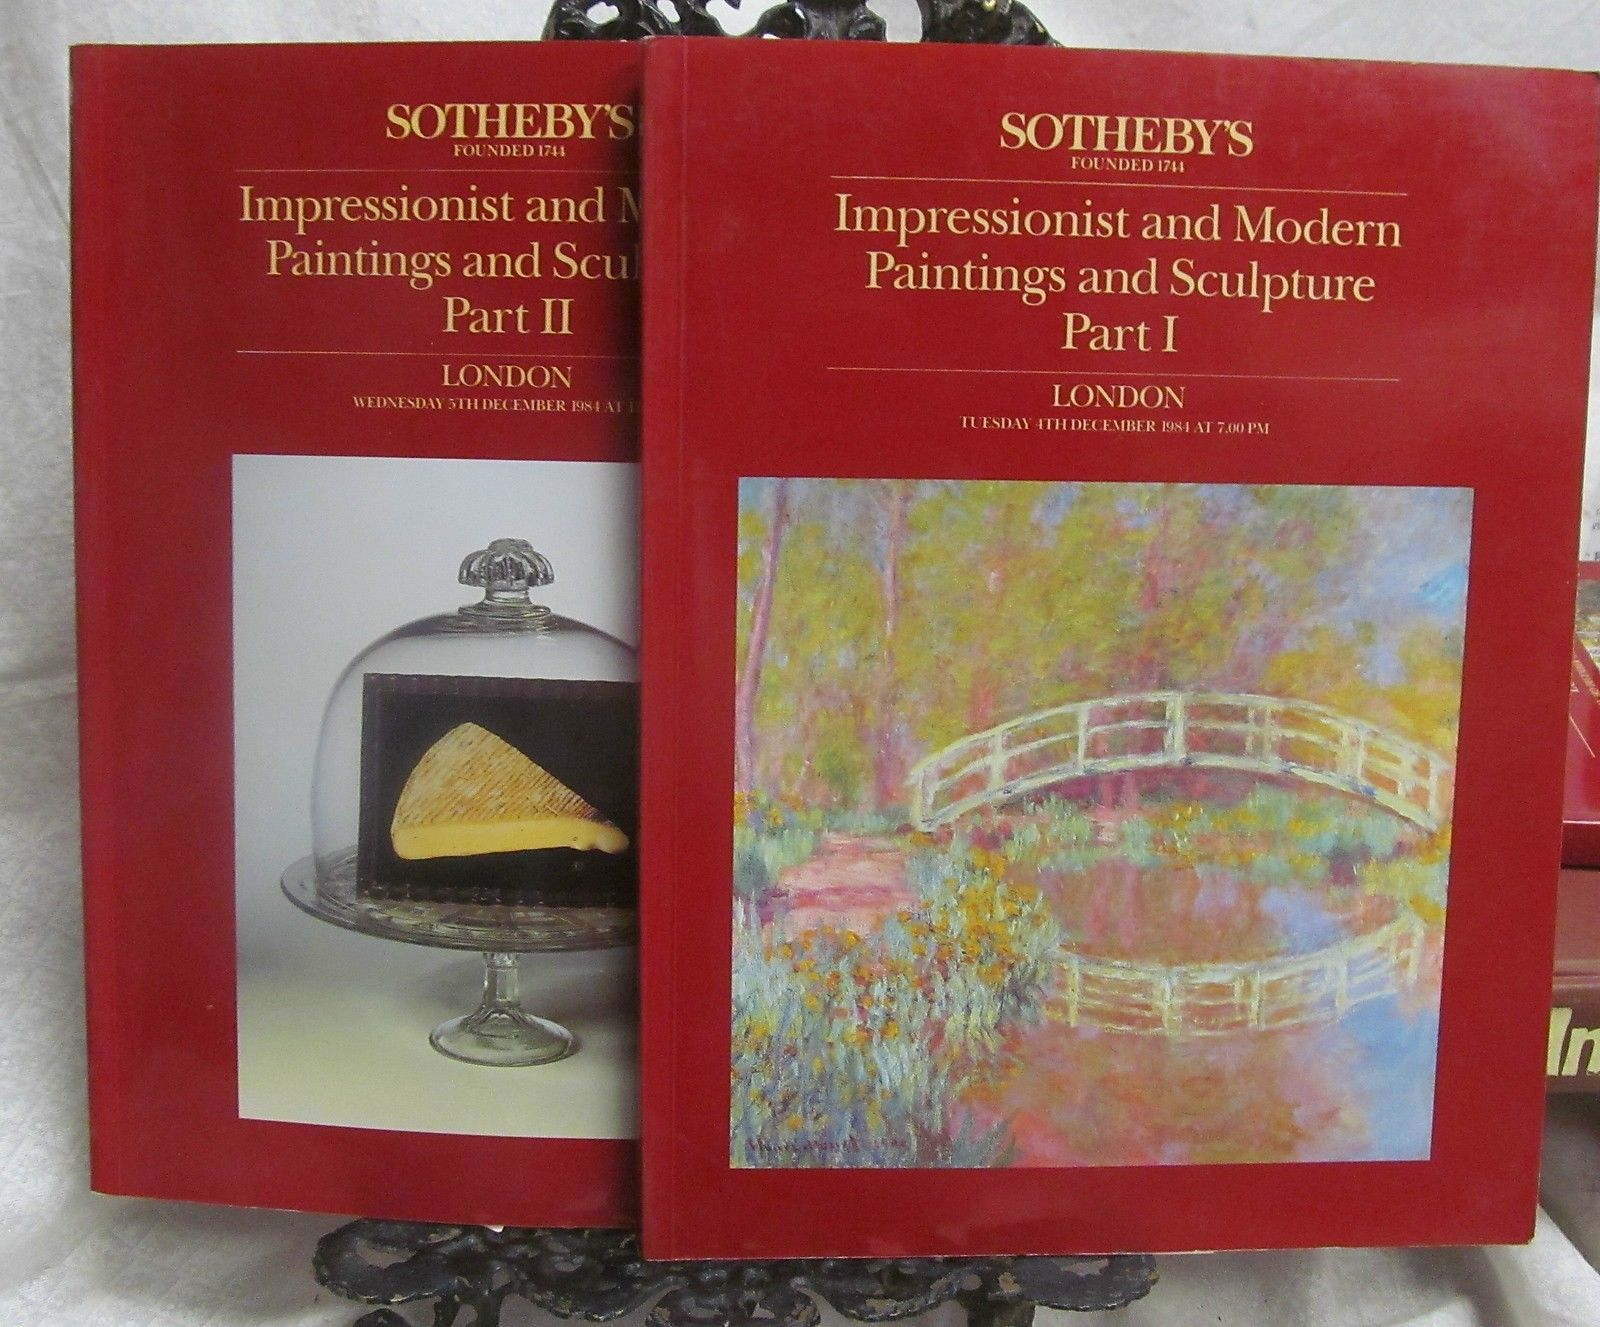 Sotheby's Sale December 1984 Sales Catalogs Parts I and II